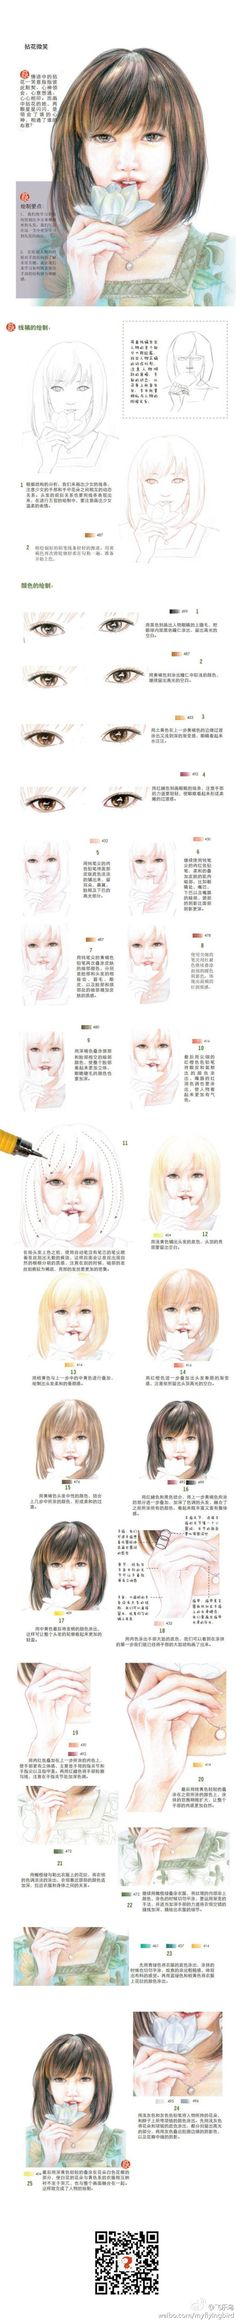 Excellent Drawing Faces With Graphite Pencils Ideas. Enchanting Drawing Faces with Graphite Pencils Ideas. Pencil Drawing Tutorials, Watercolour Tutorials, Art Tutorials, Colored Pencil Portrait, Color Pencil Art, Crayon Drawings, Colored Pencil Tutorial, Painting Courses, Body Drawing